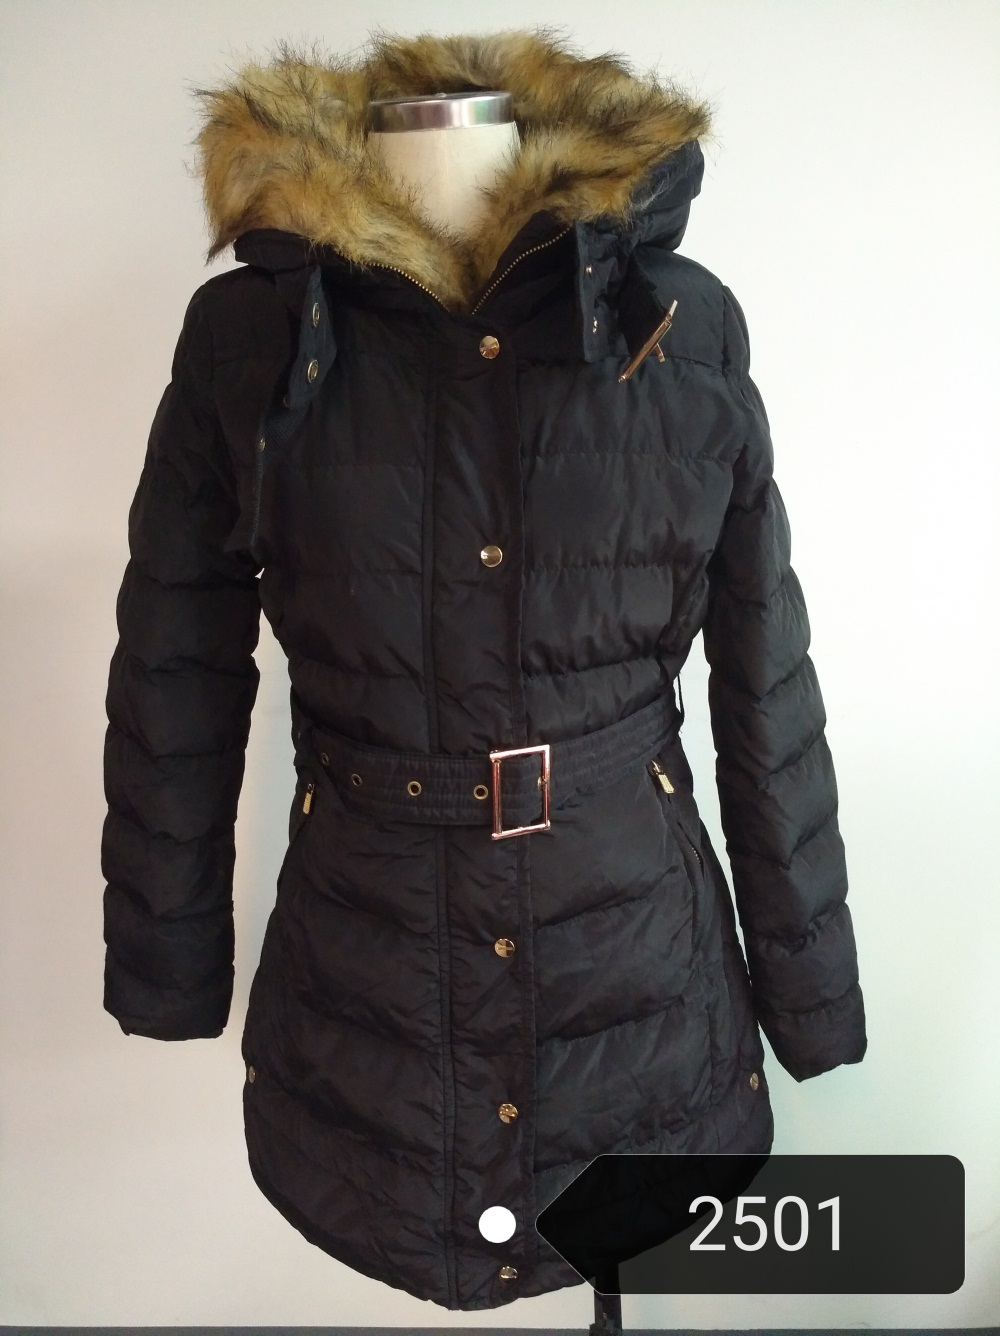 women jacket,fashion jacket,latest winter jacket for women 2501